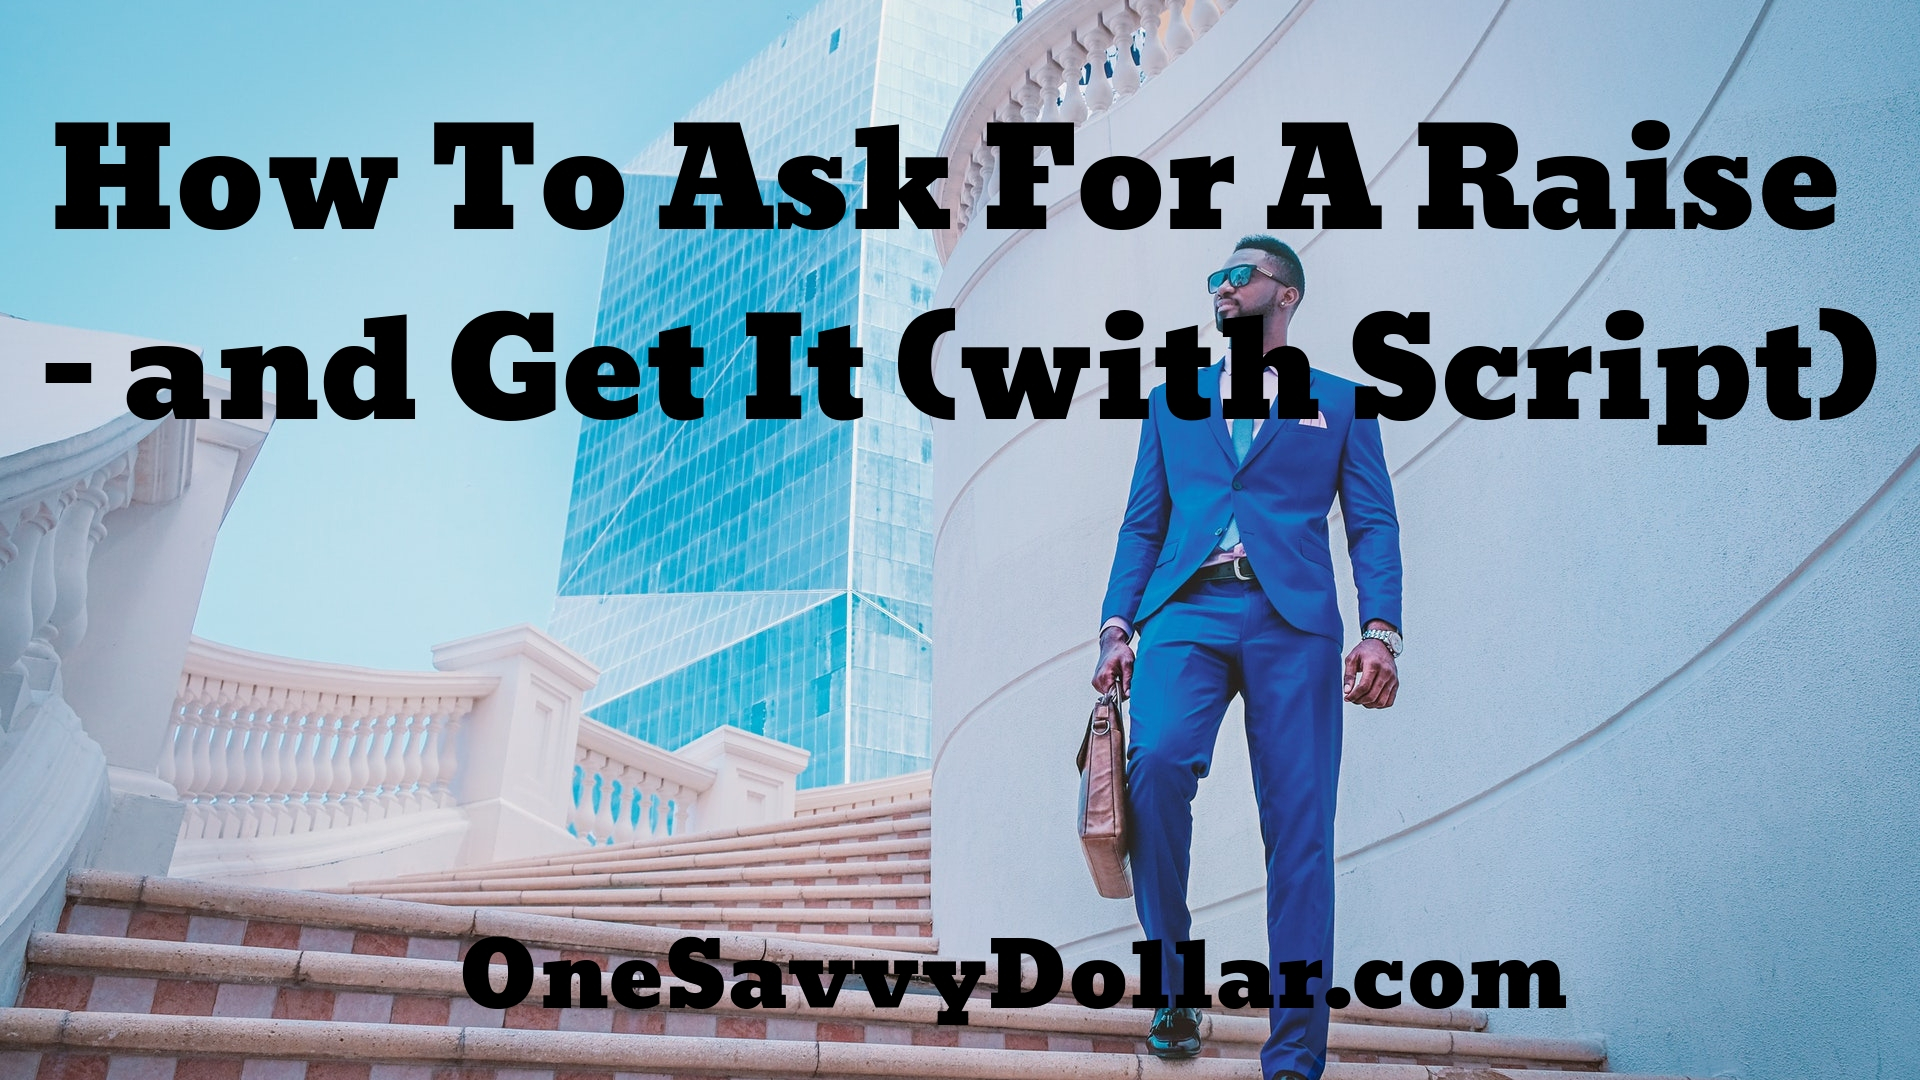 How to Ask For Raise and Get it With Script